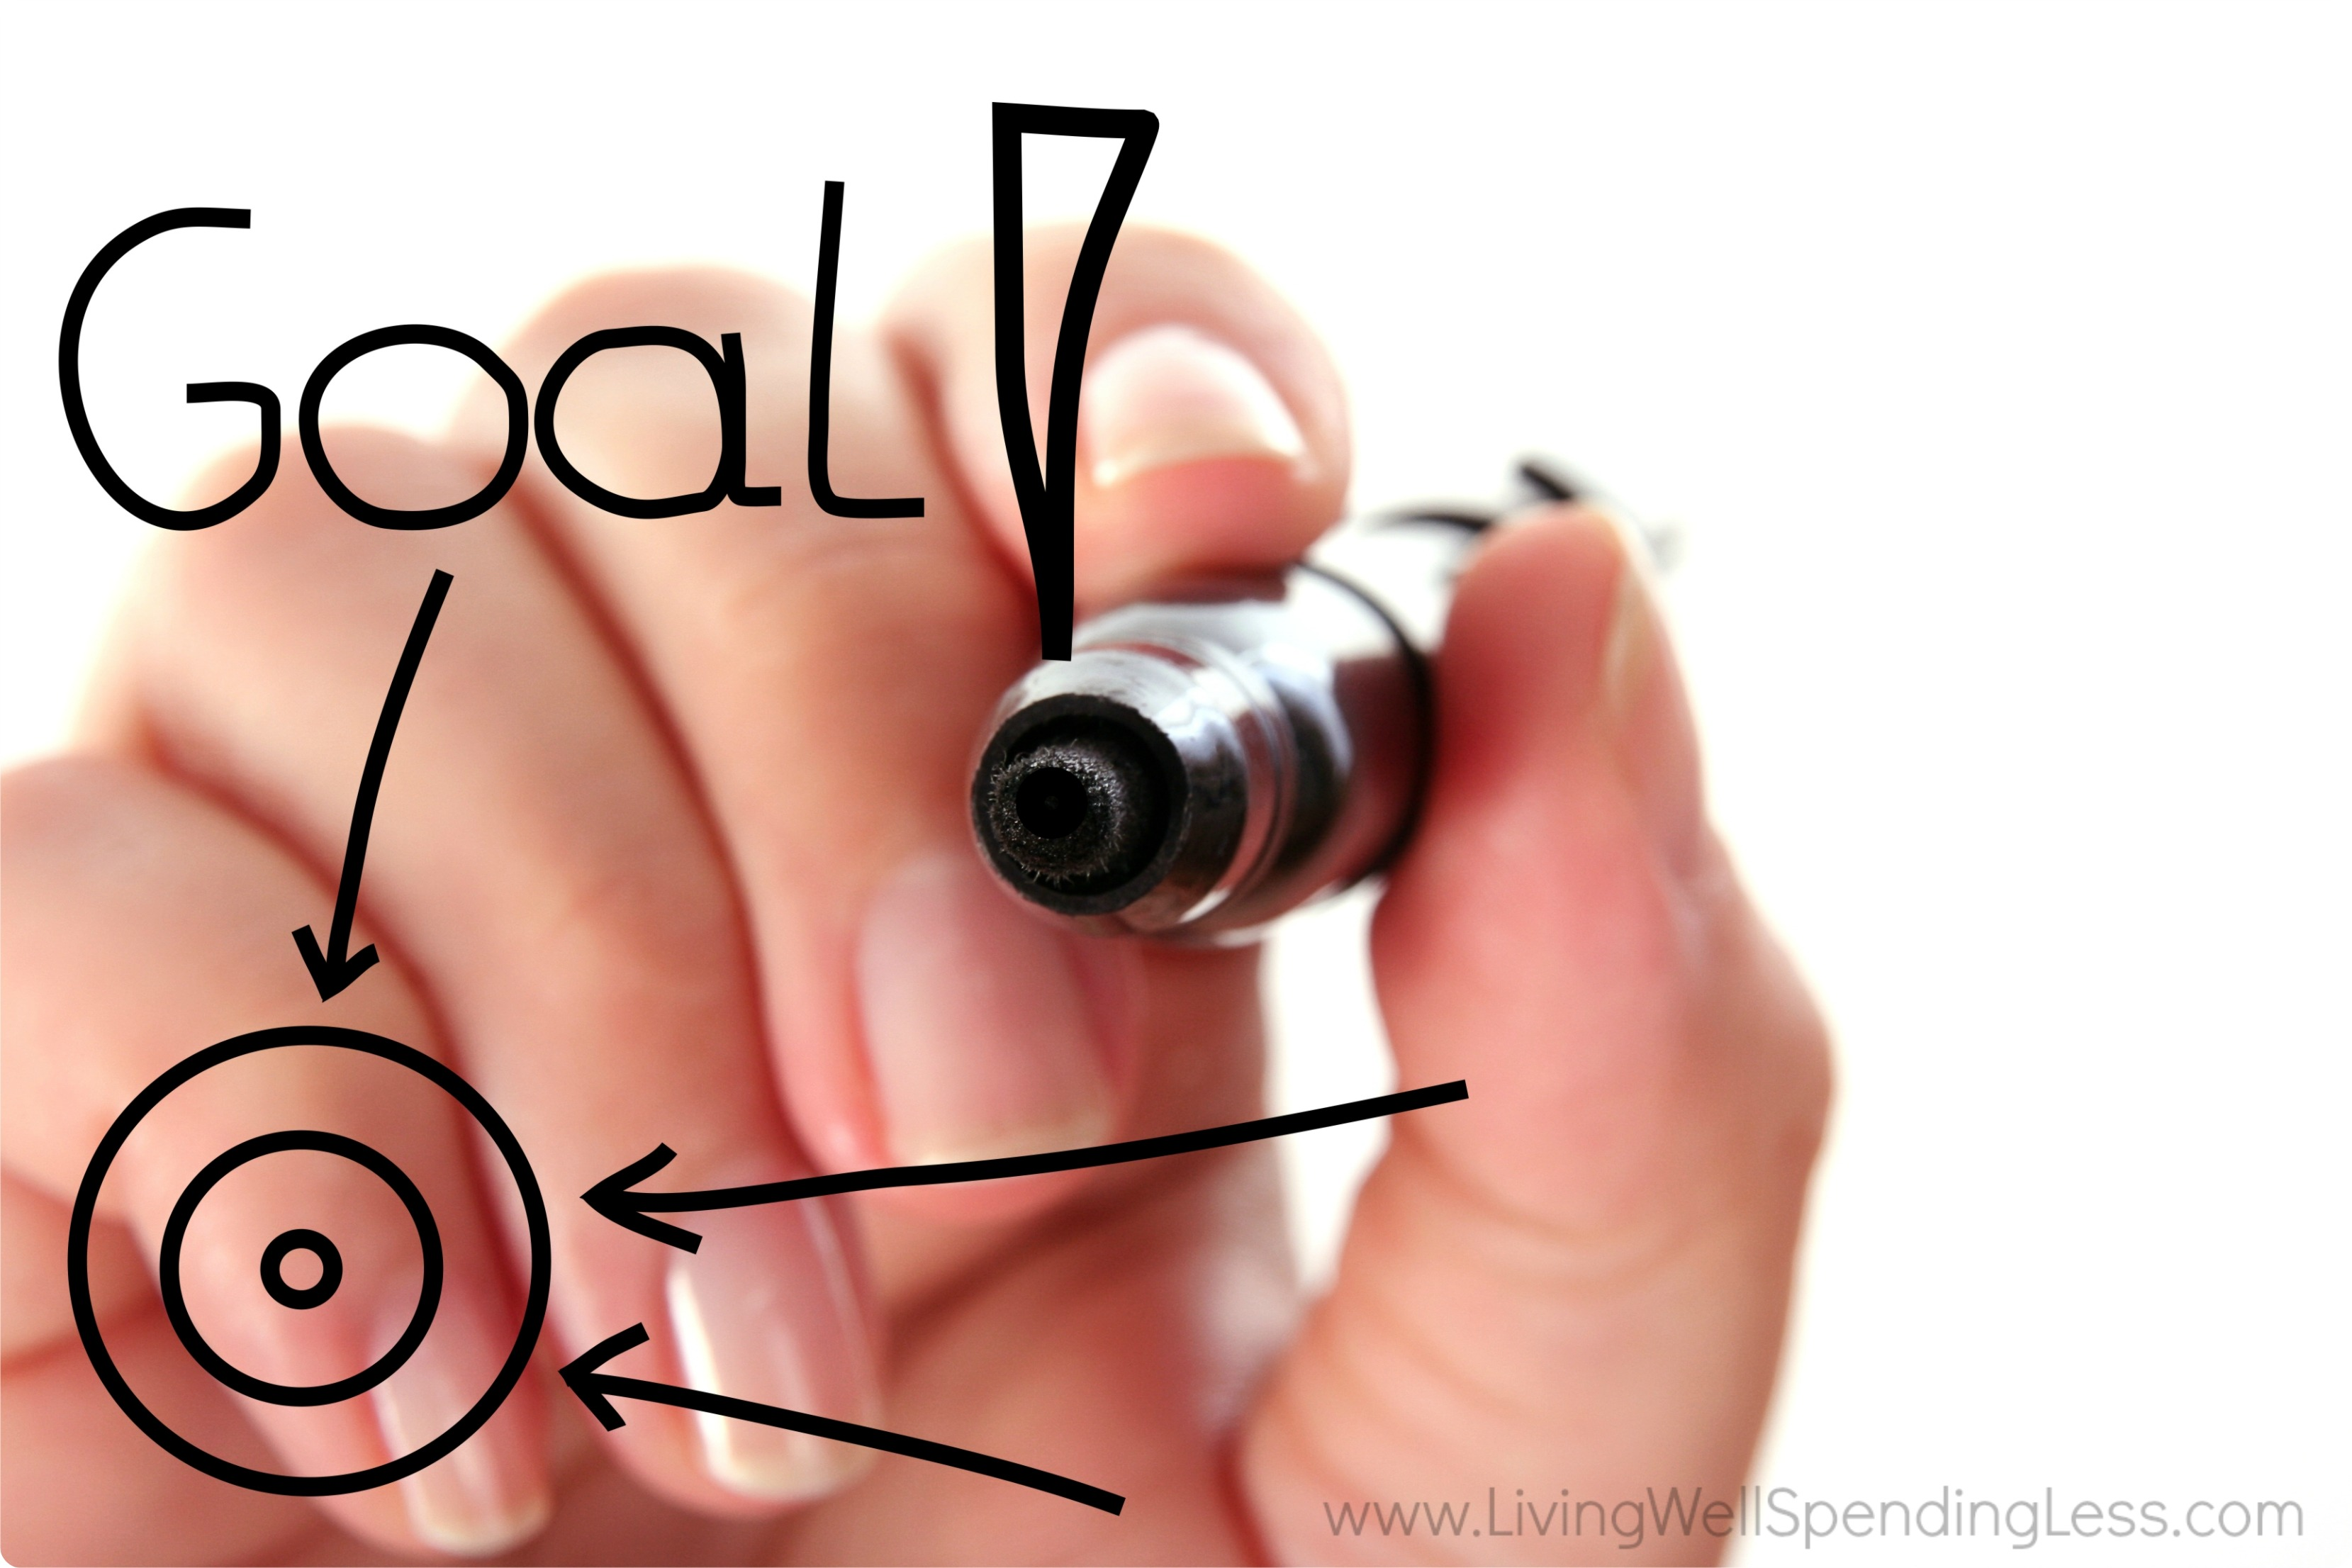 Setting financial goals is important for establishing good money habits.